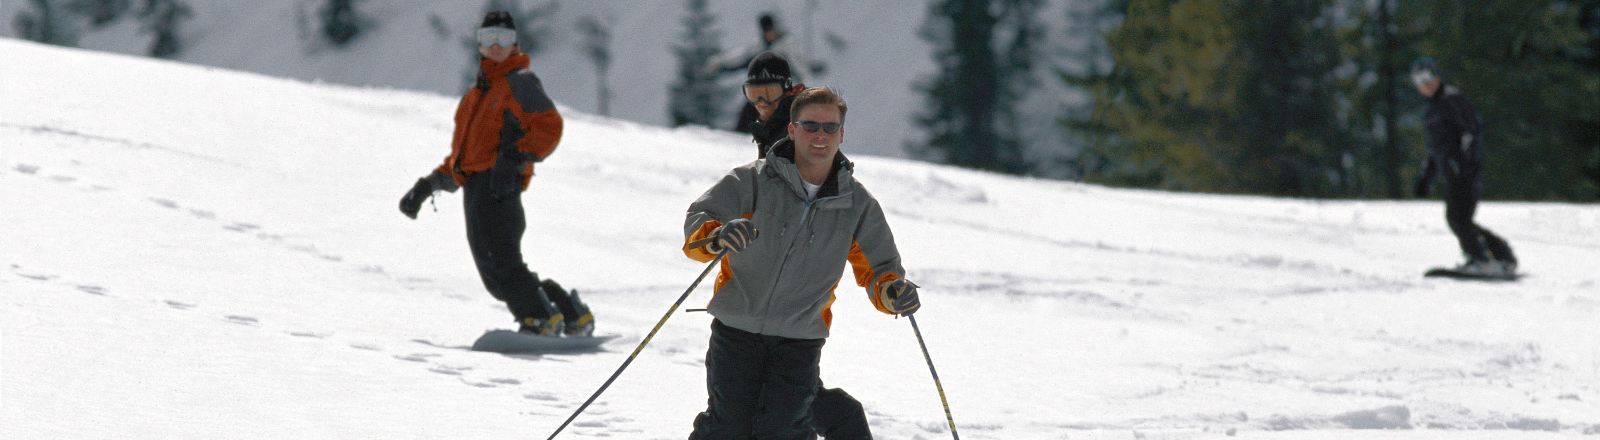 Downhill skier and 3 snowboarders winding their way down run at Mt. Hood Skibowl in Oregon's Mount Hood Territory